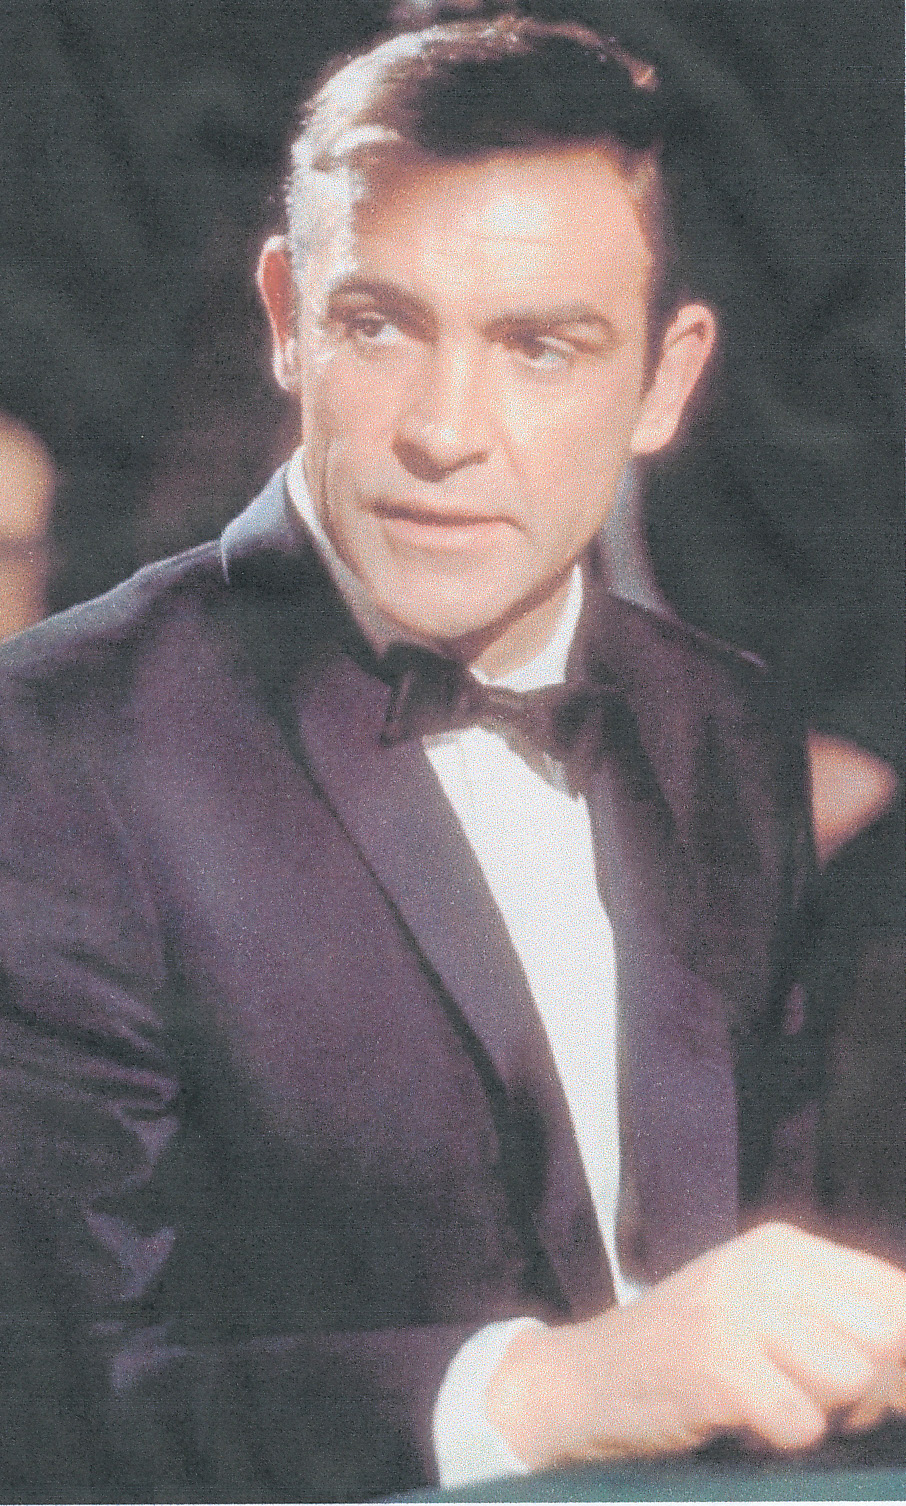 Connery as Bond in Thunderball